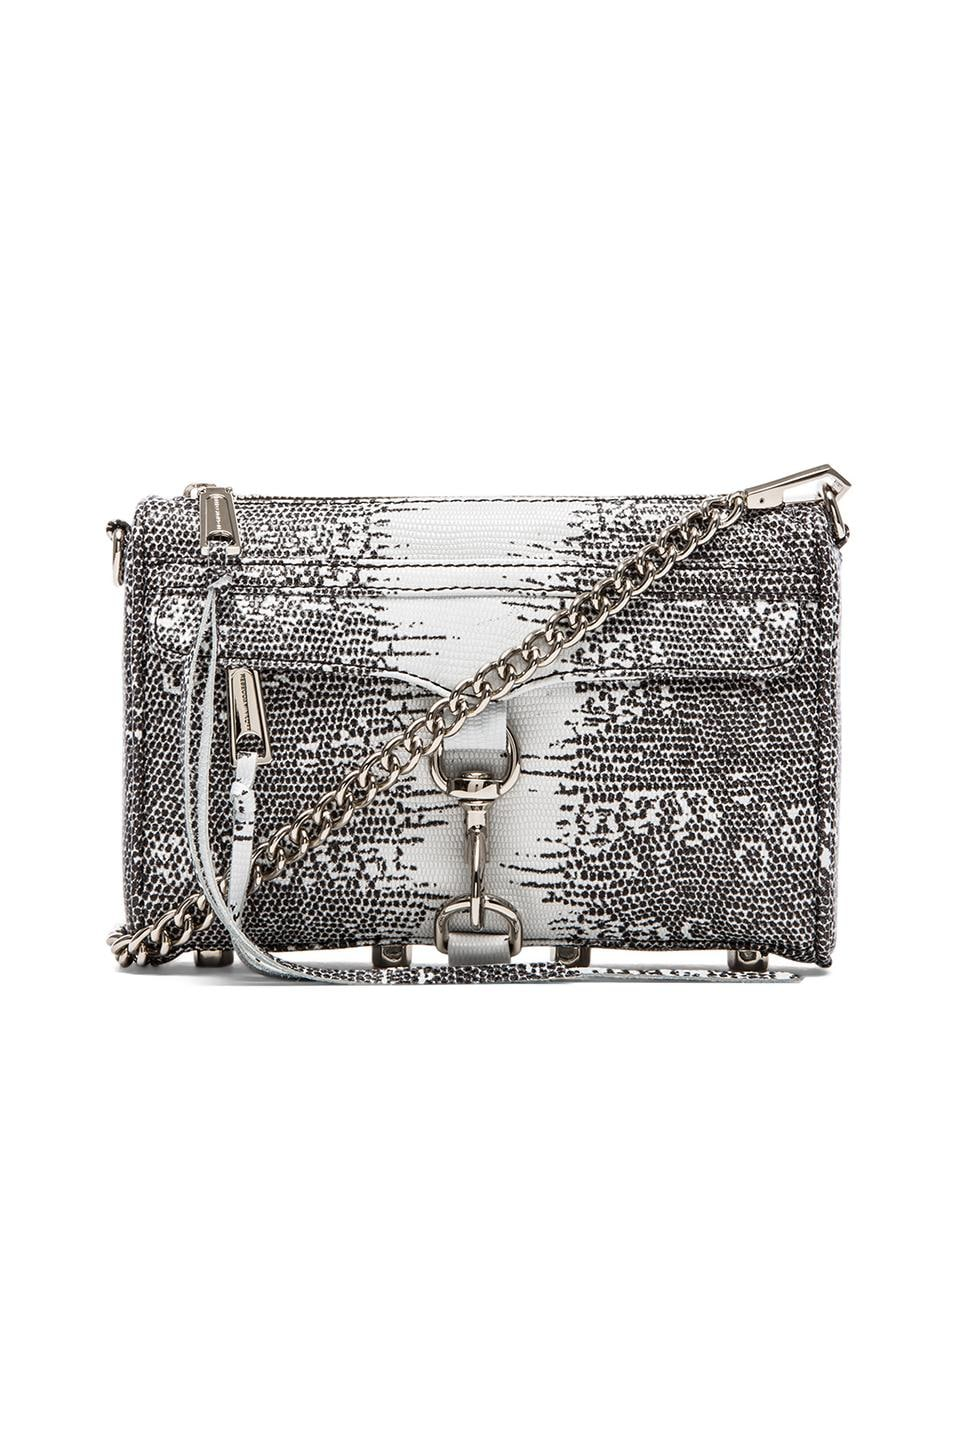 Rebecca Minkoff Printed Lizard Mini MAC in White